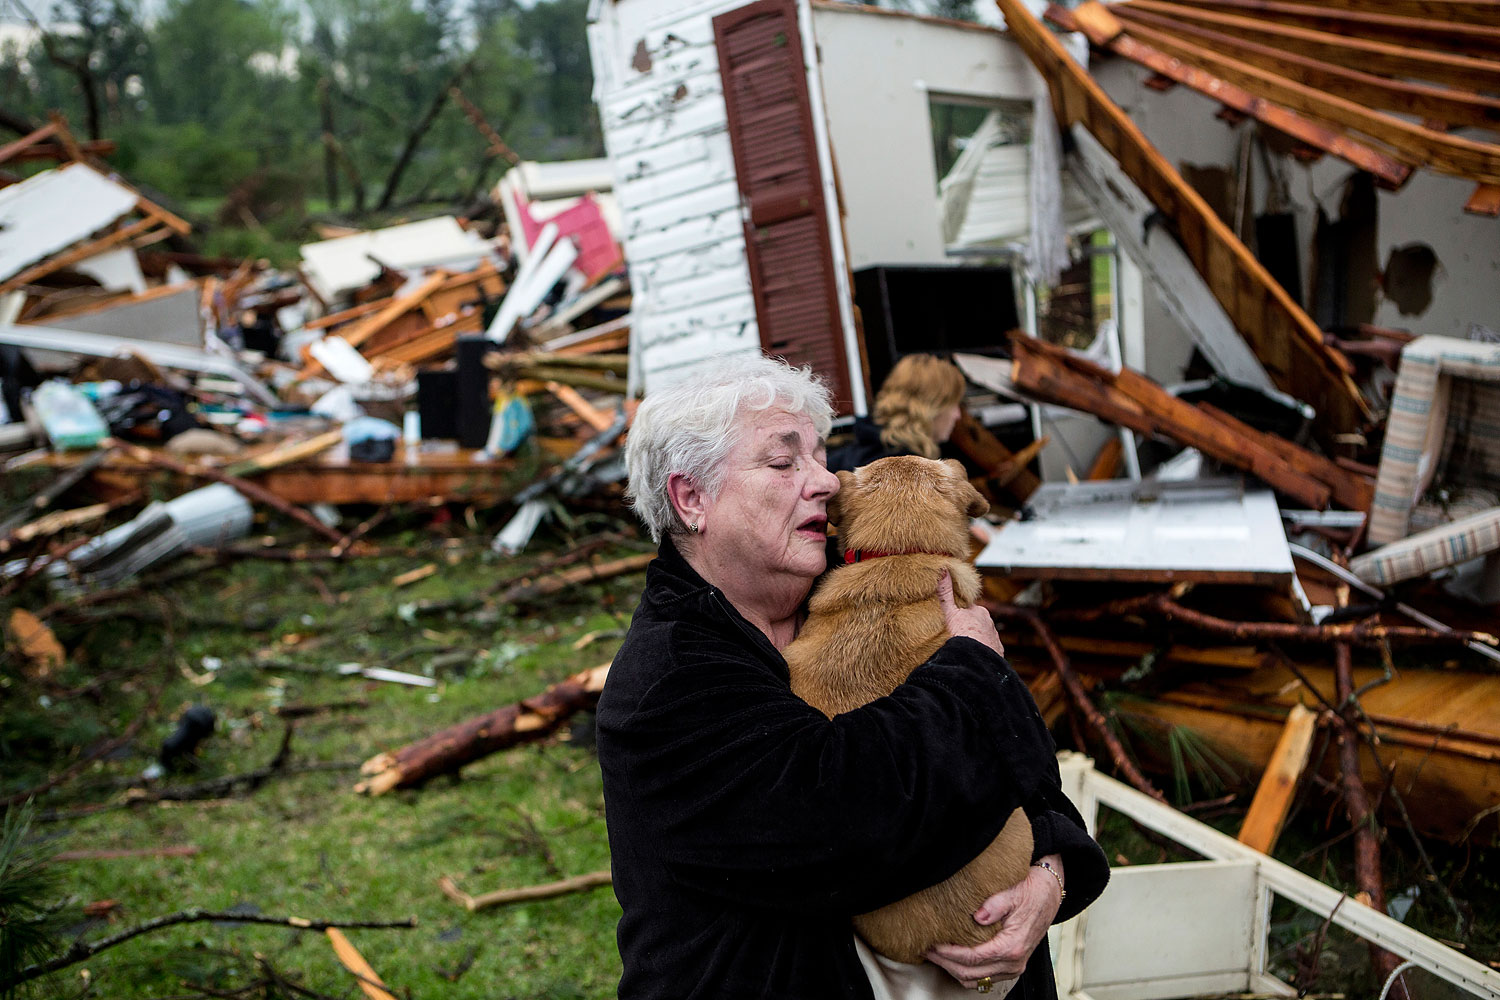 Constance Lambert embraces her dog after finding it alive when returning to her destroyed home in Tupelo, Miss., April 28, 2014.